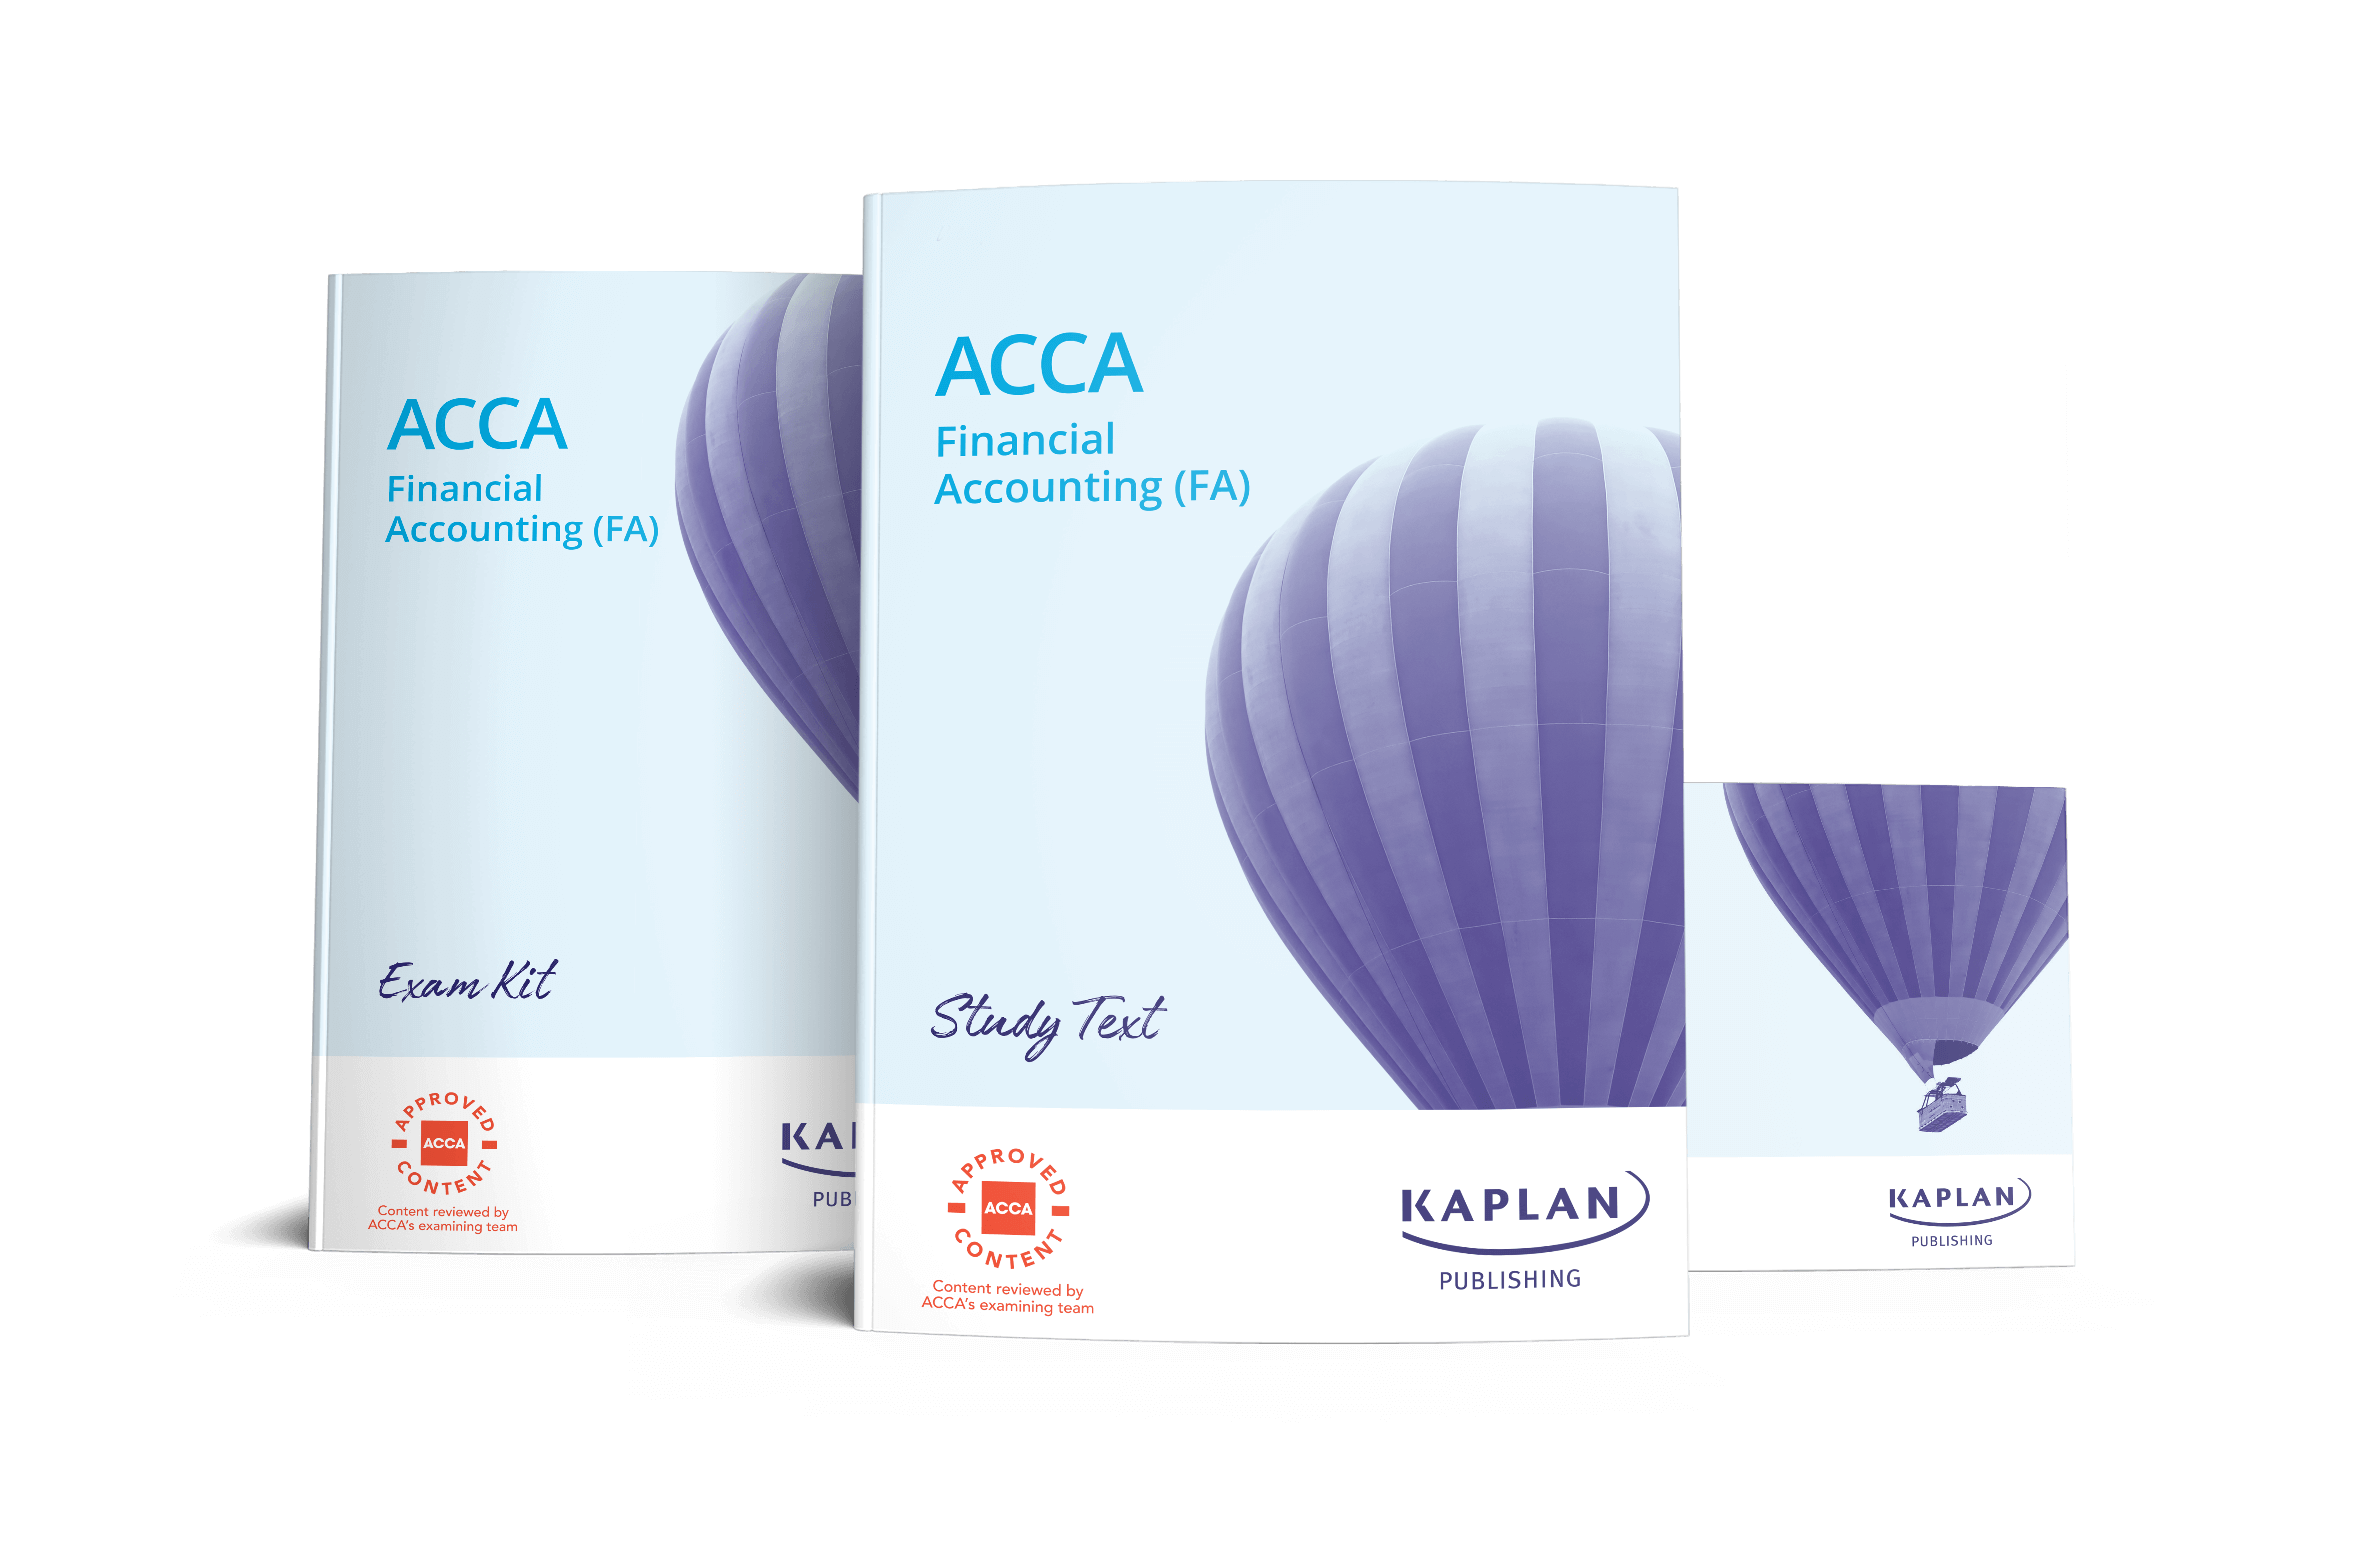 Approved study materials for ACCA Financial Accounting FA